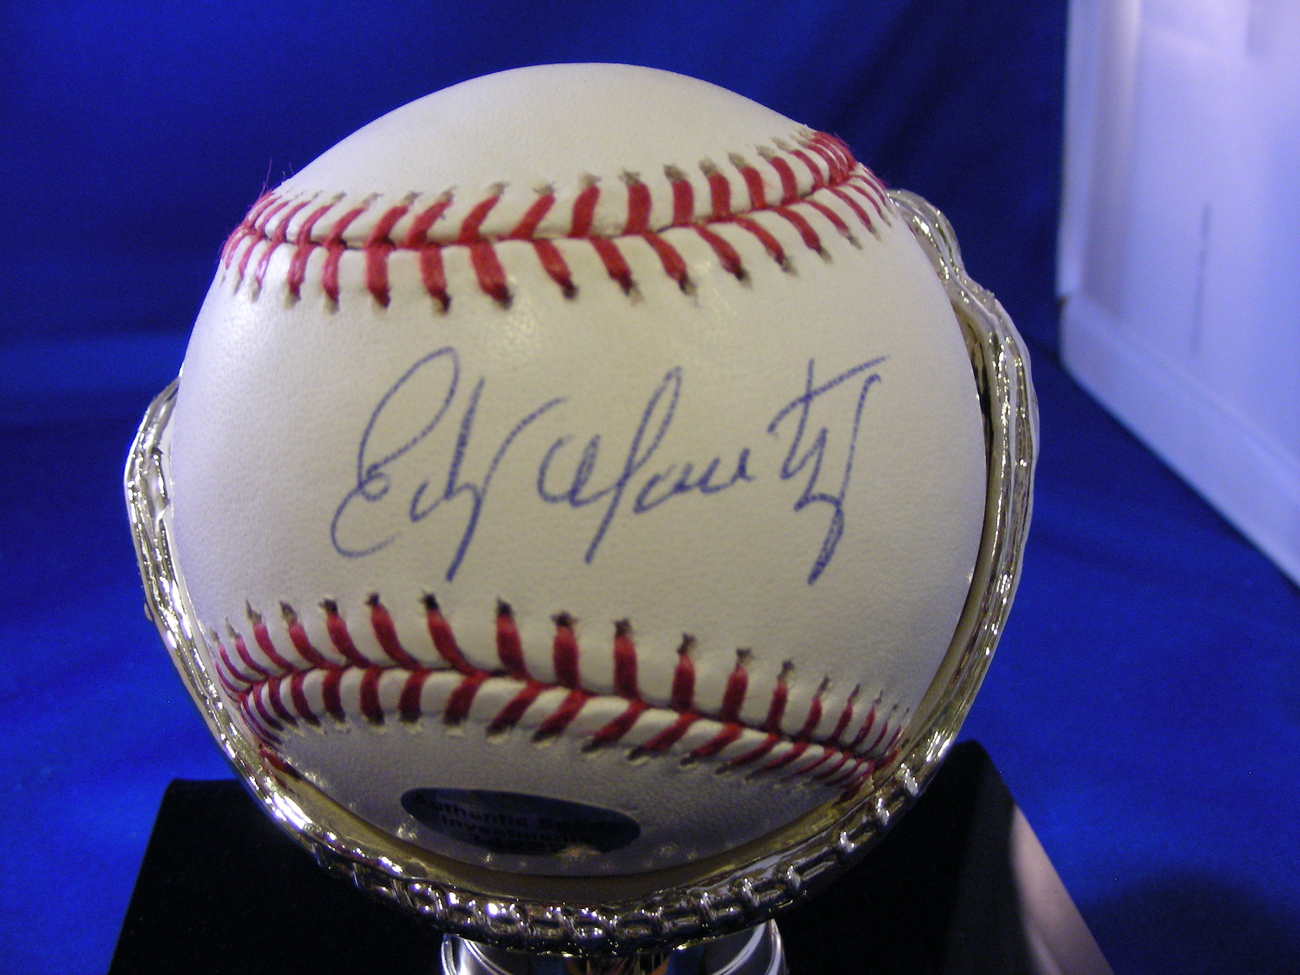 Primary image for EDGAR MARTINEZ 2X AL BATTING TITLES 5X SS AWARD SIGNED AUTO BASEBALL PSA/DNA